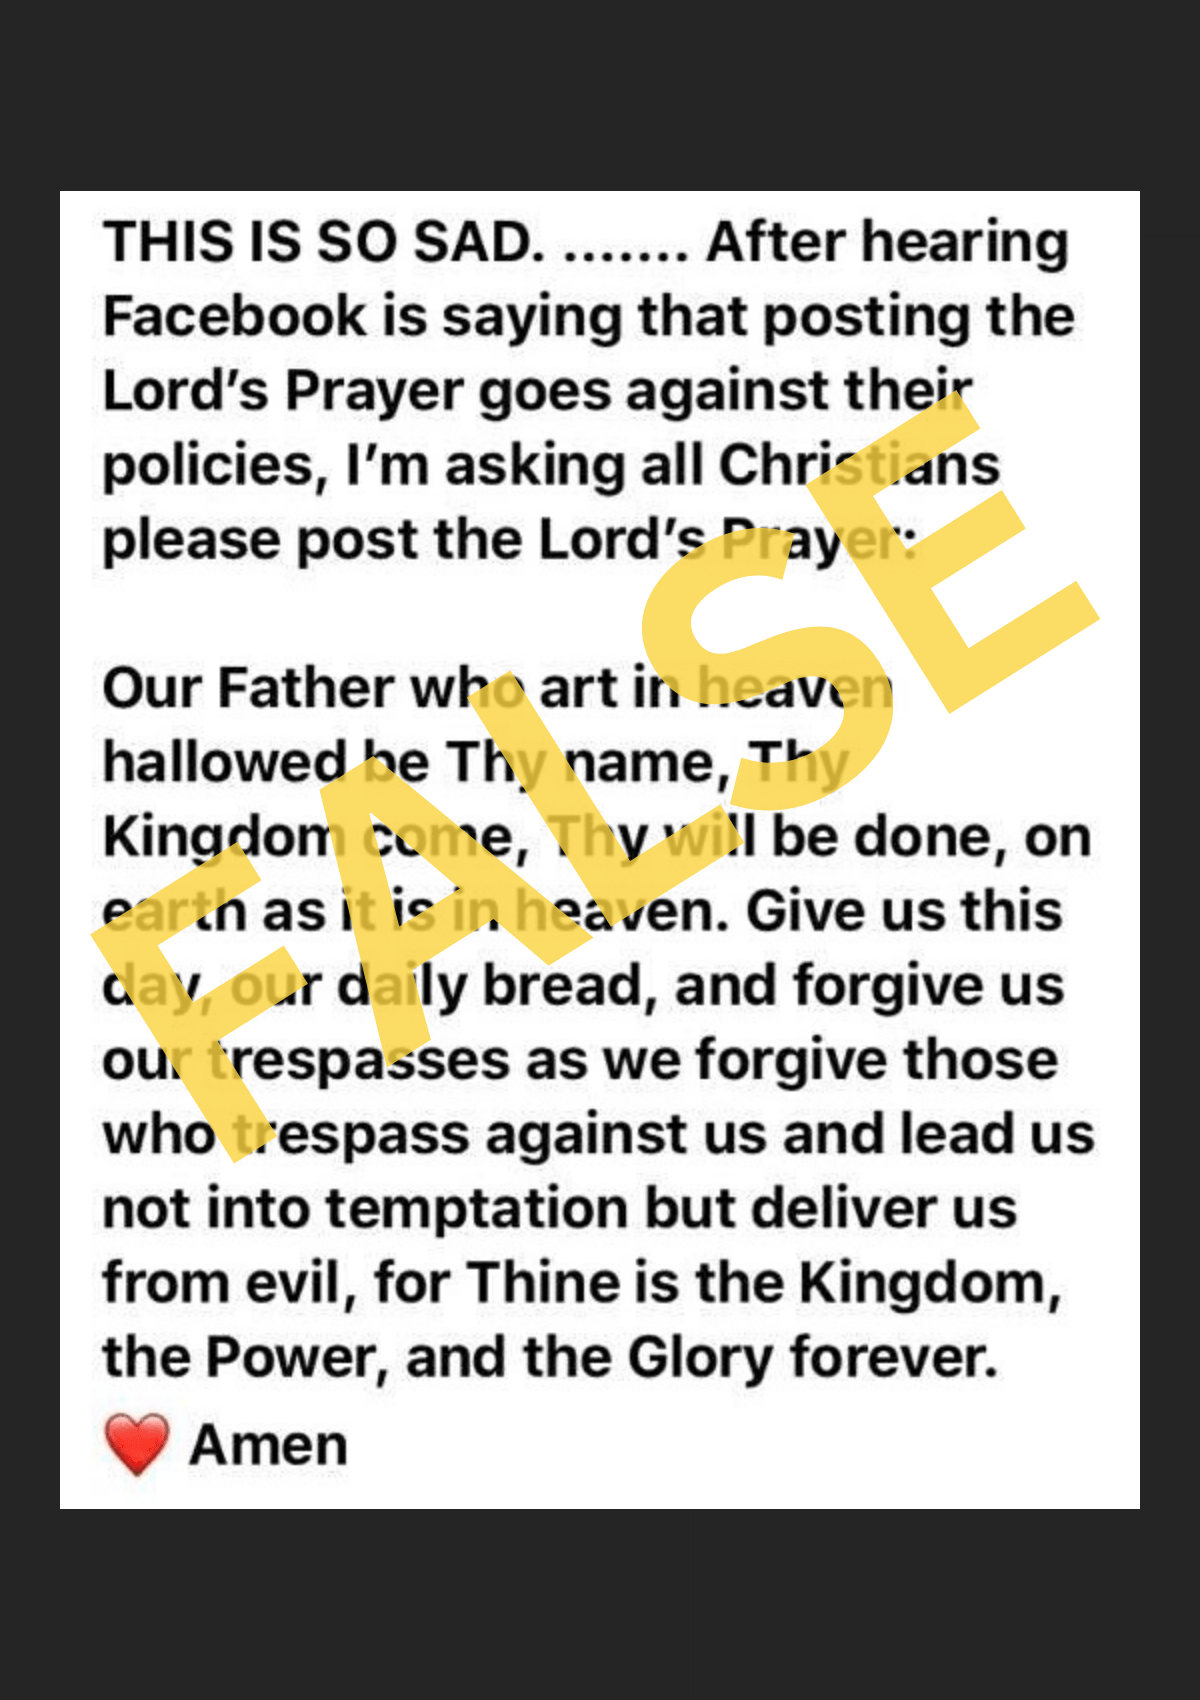 Does Facebook Prohibit Posting of the Lord's Prayer?